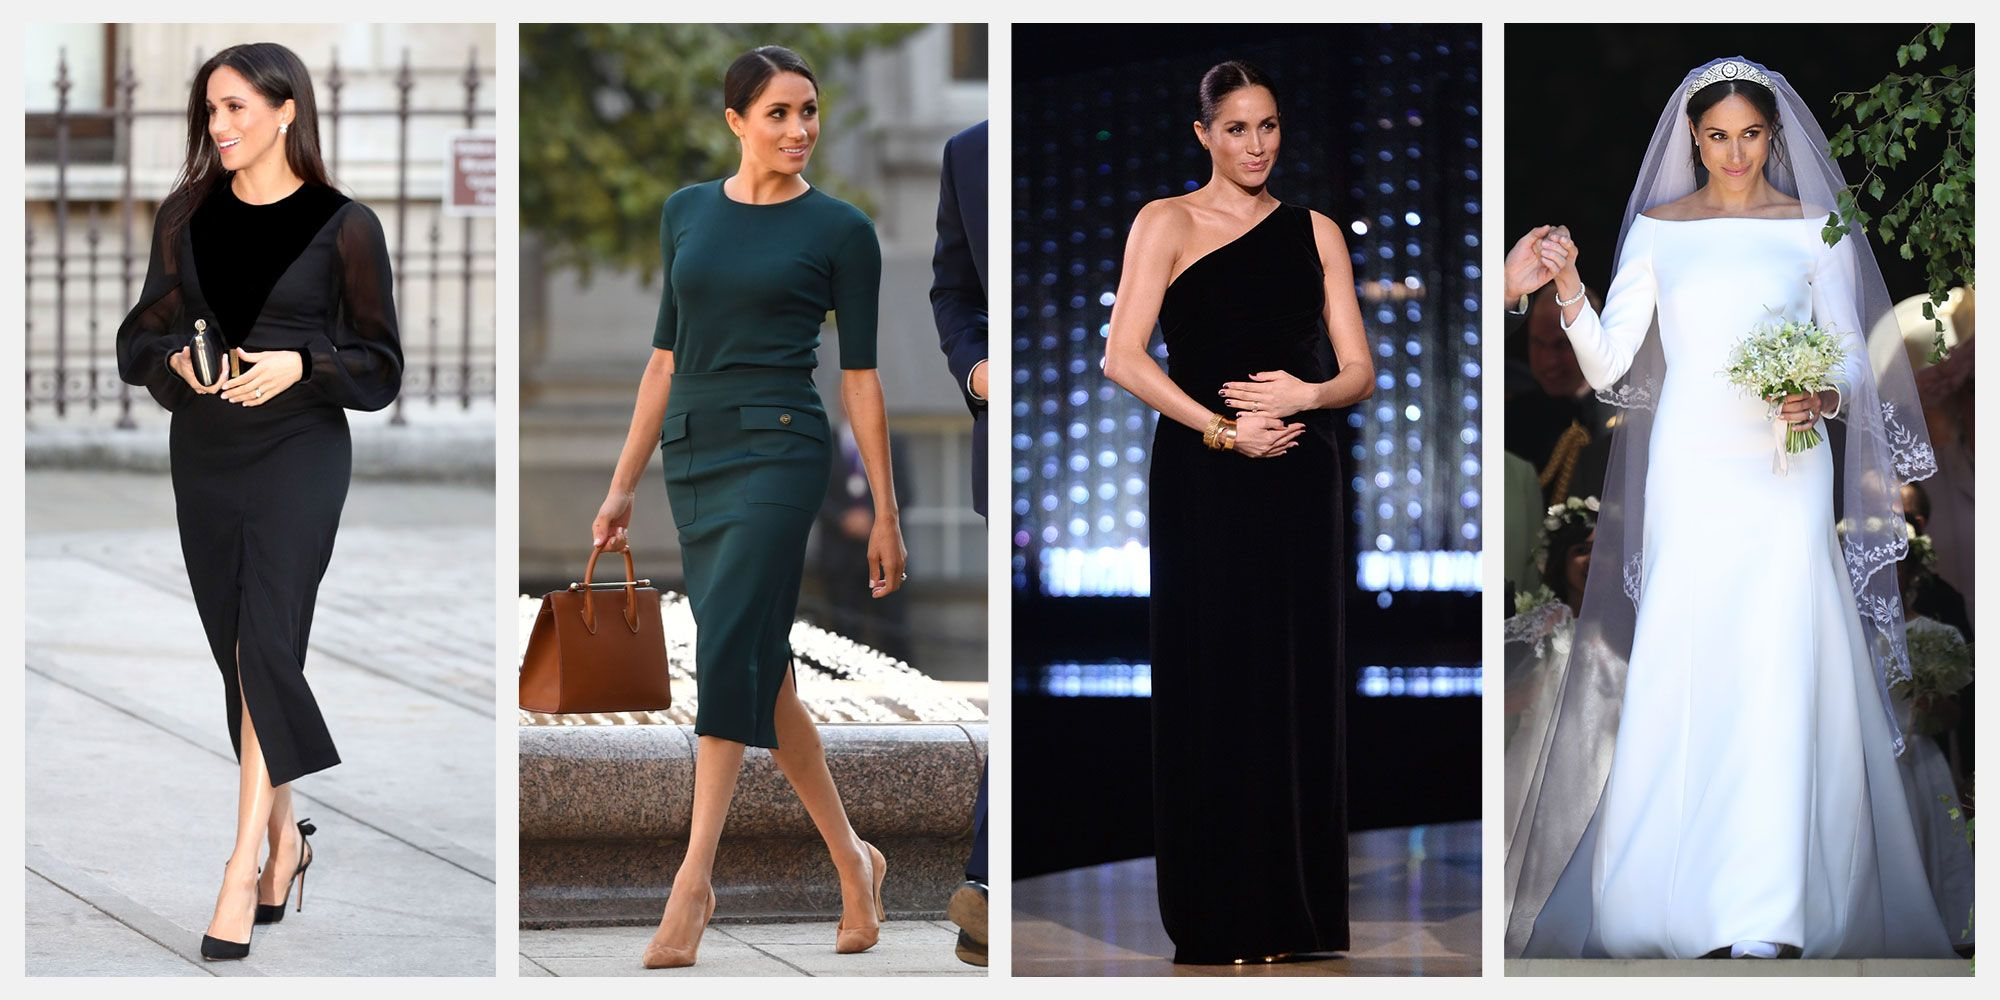 15+ Times Meghan Markle Wore Givenchy